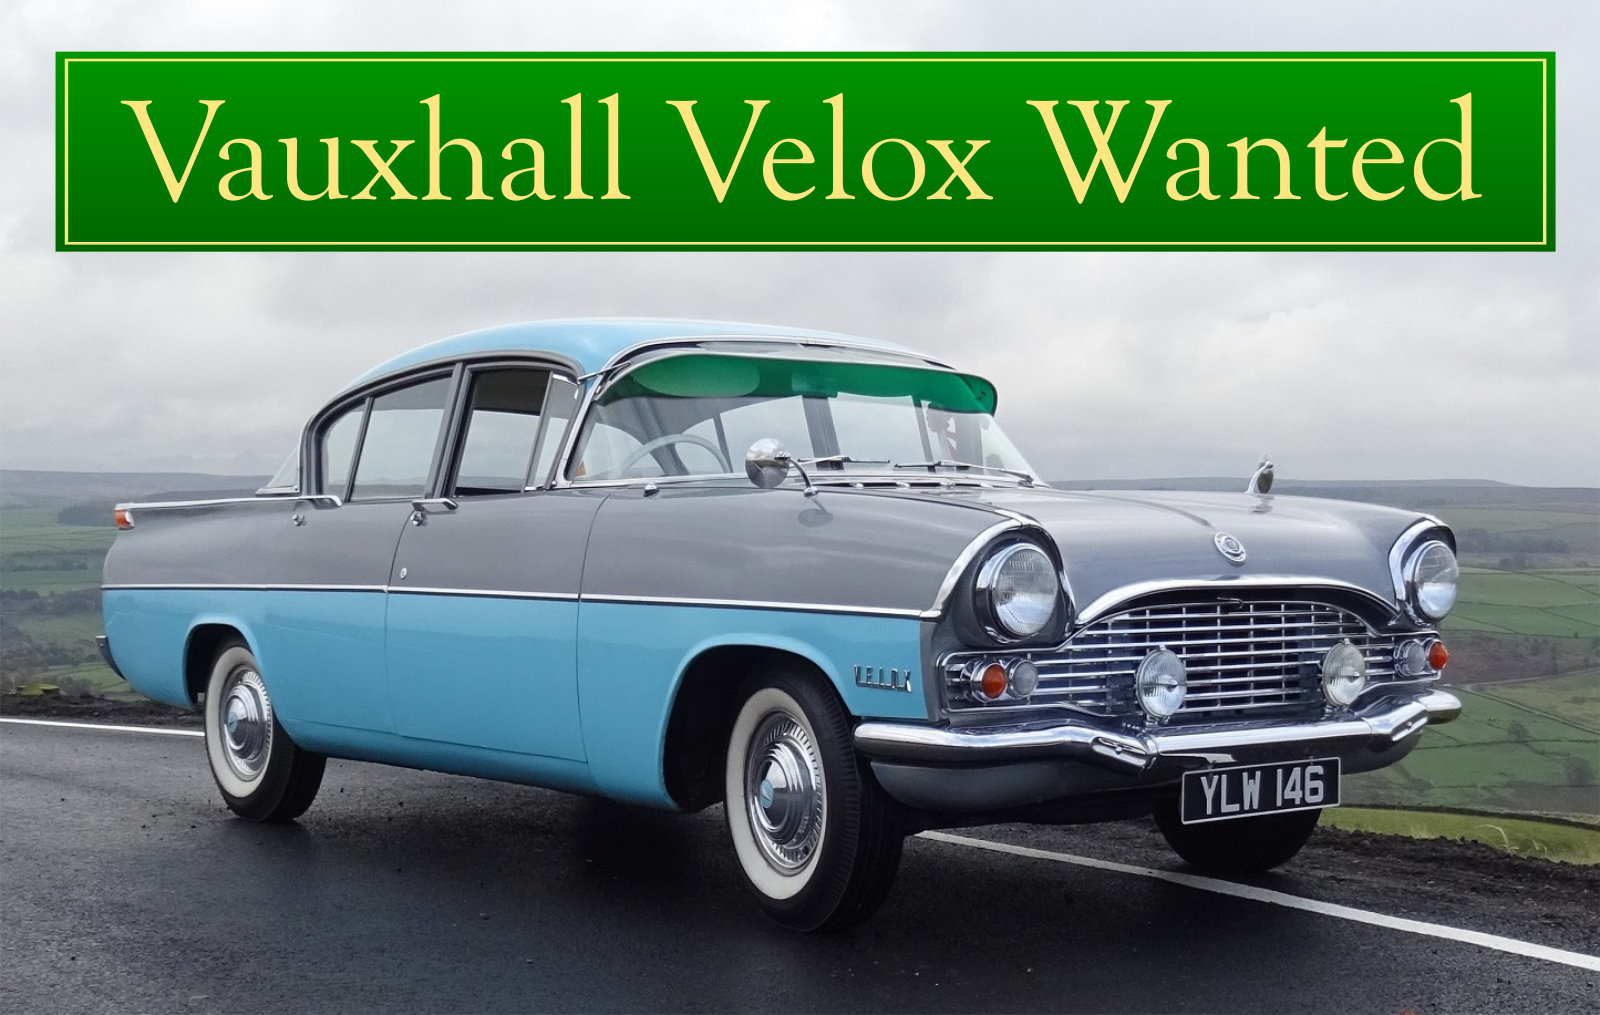 VAUXHALL CRESTA WANTED, CLASSIC CARS WANTED INSTANT PAYMENT Wanted (picture 2 of 6)